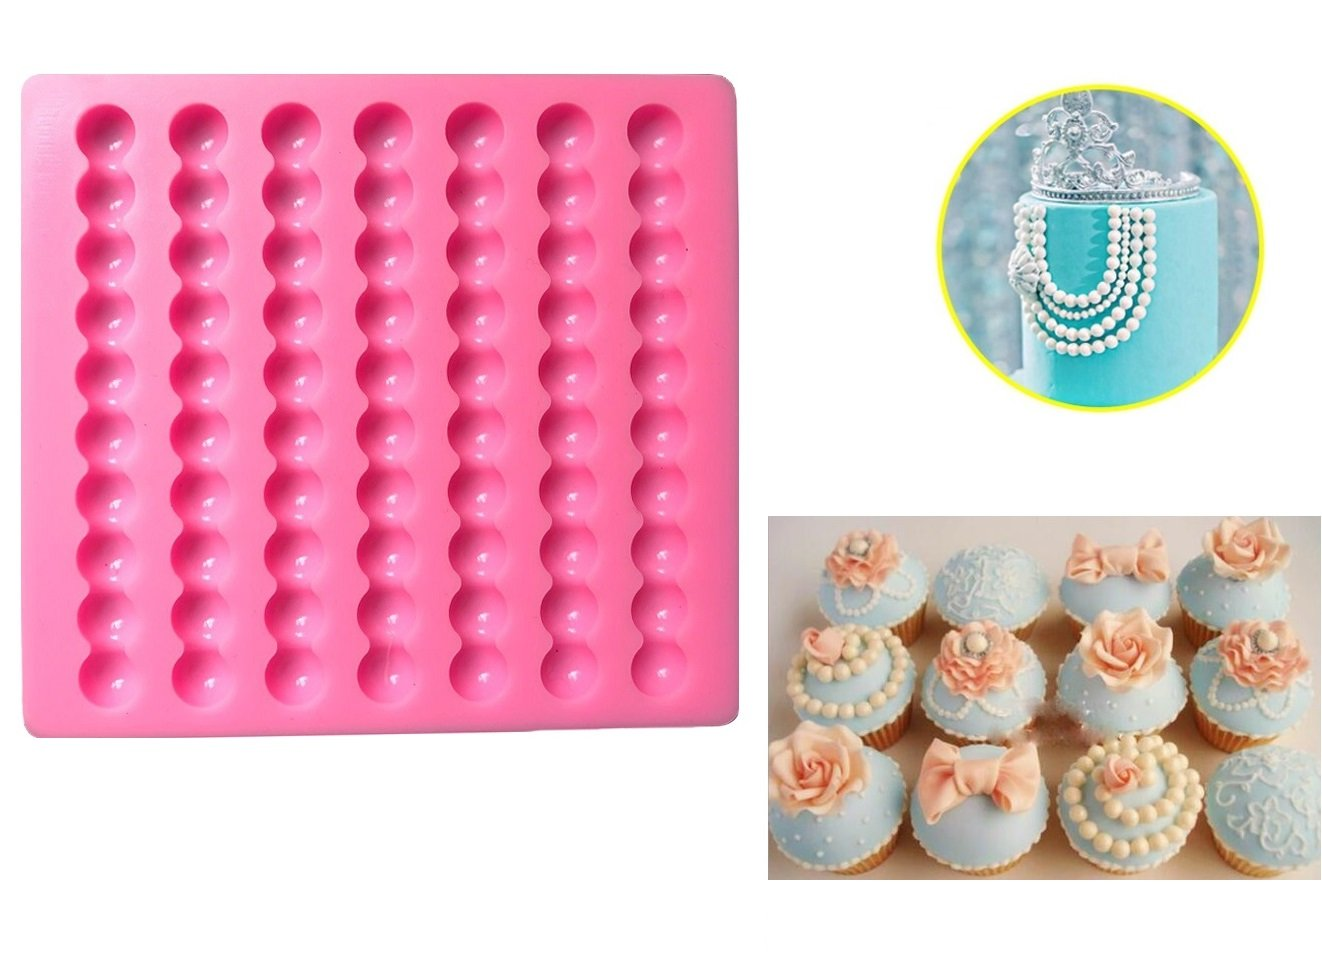 1CM Pearl Silicone Fondant Mold,Cake Decorating /Fimo mold chocolate mold candy mold clay mold Pie Crust fondant mold Palker Sky